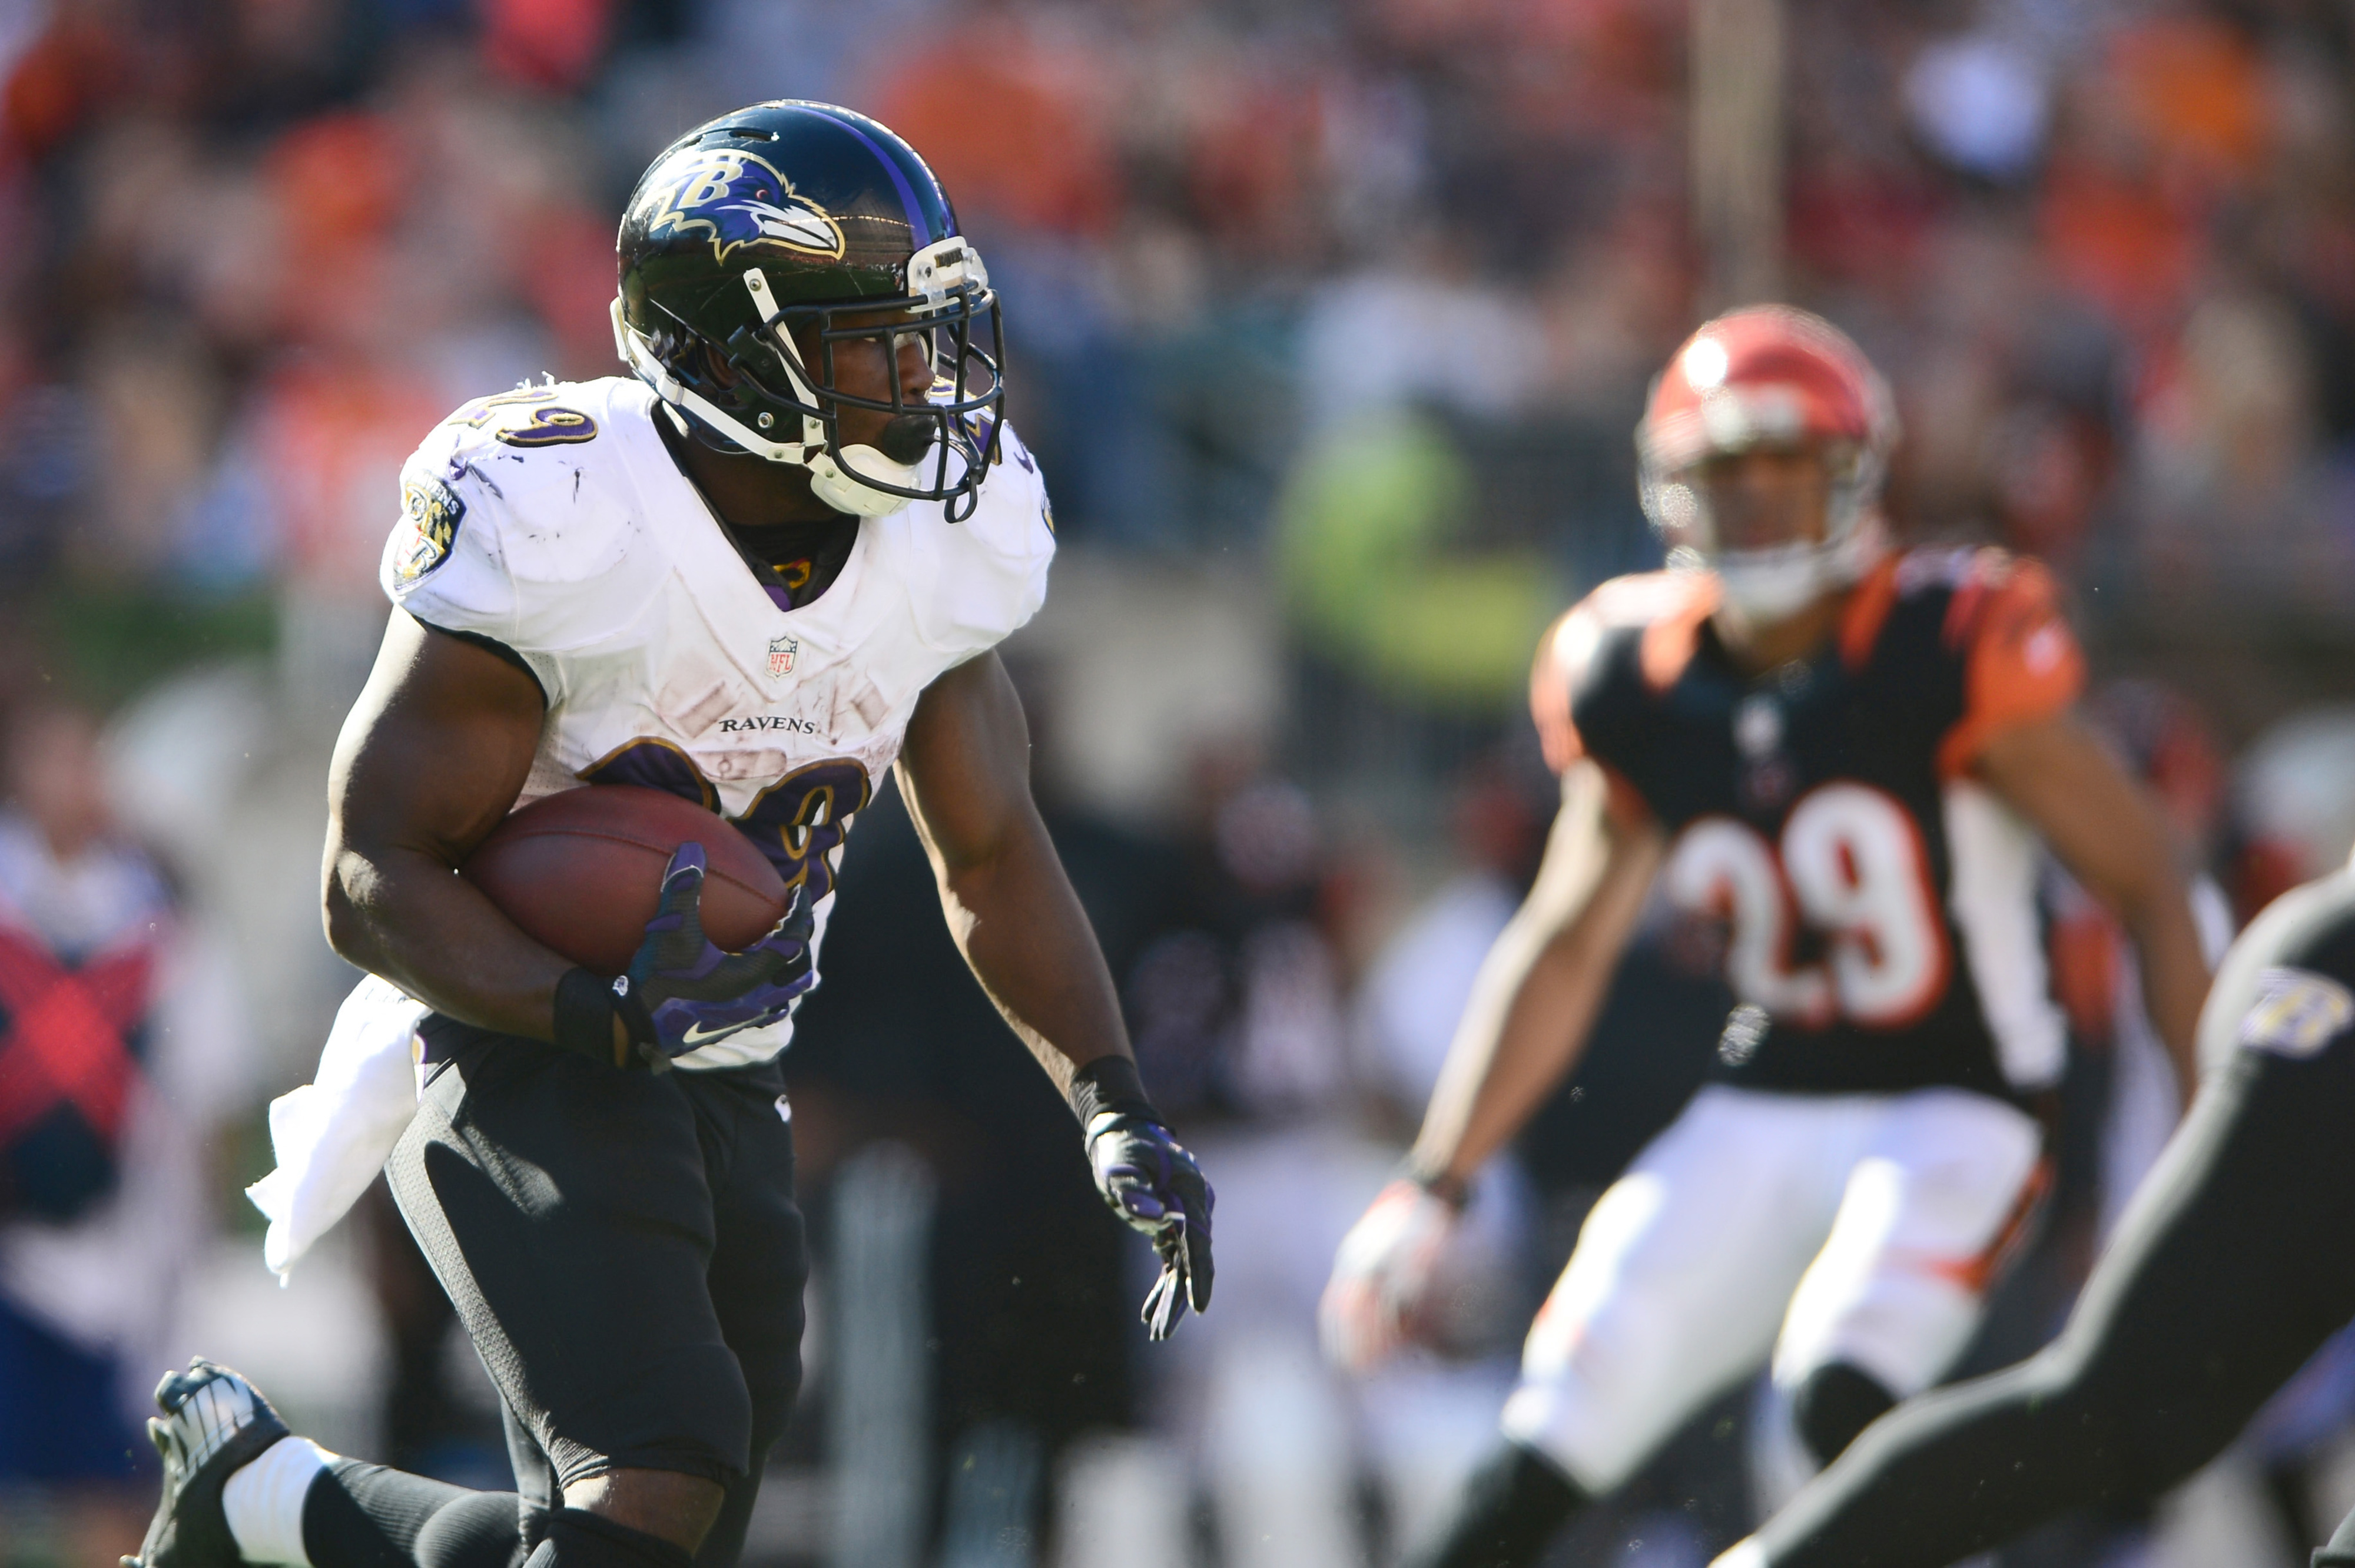 Justin Forsett returns to practice, fantasy owners can relax